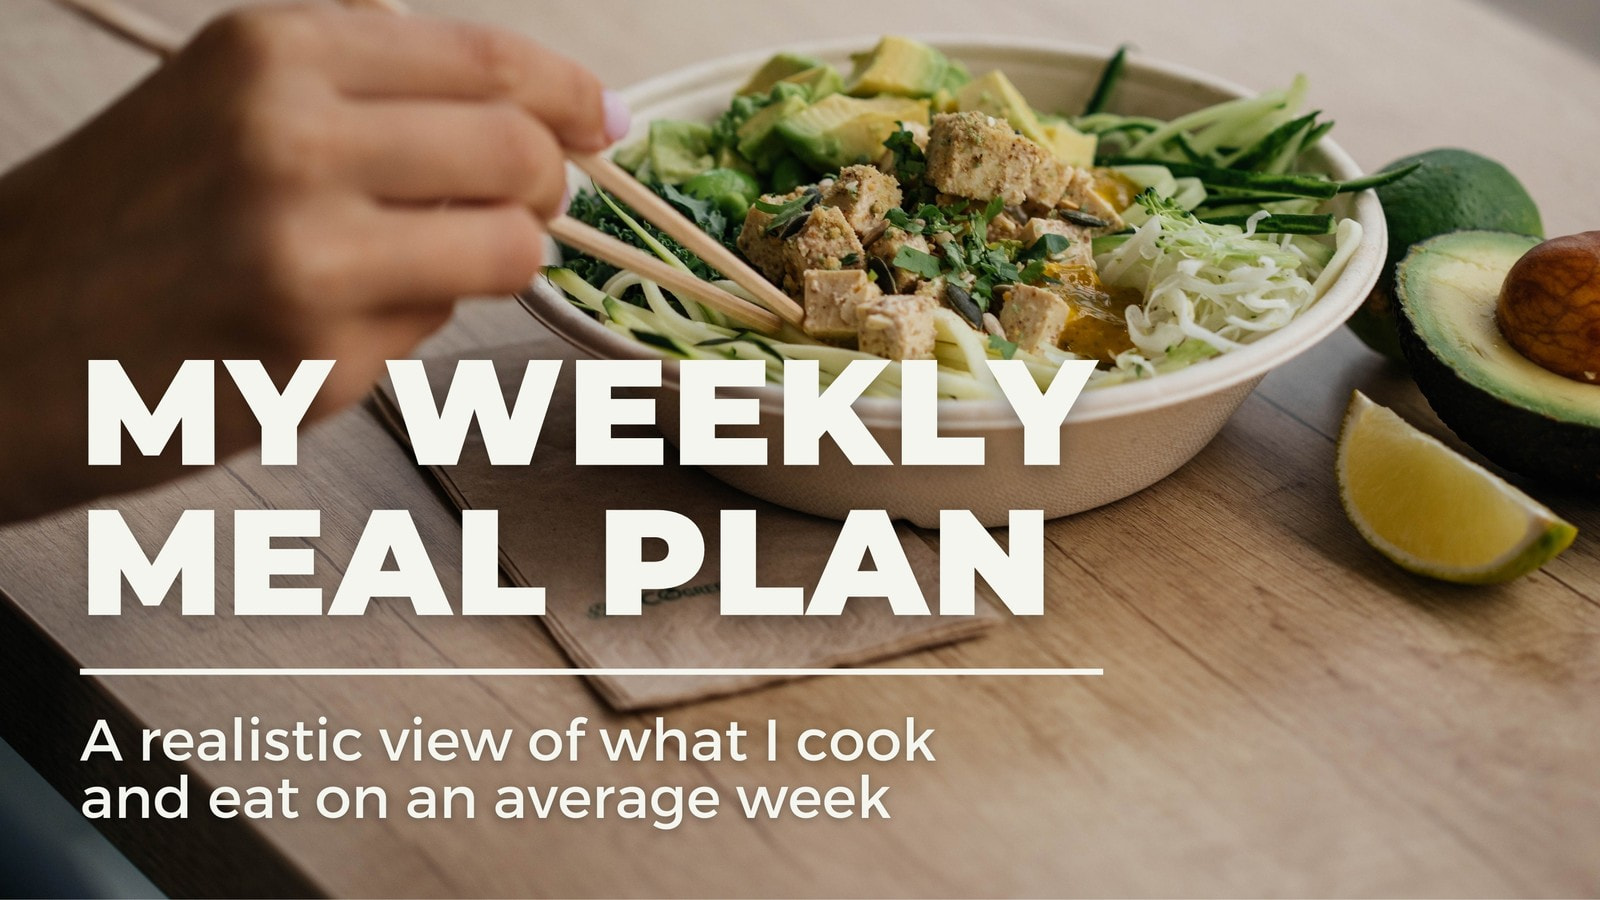 White Clean Video Centric Meal Plan Food YouTube Thumbnail